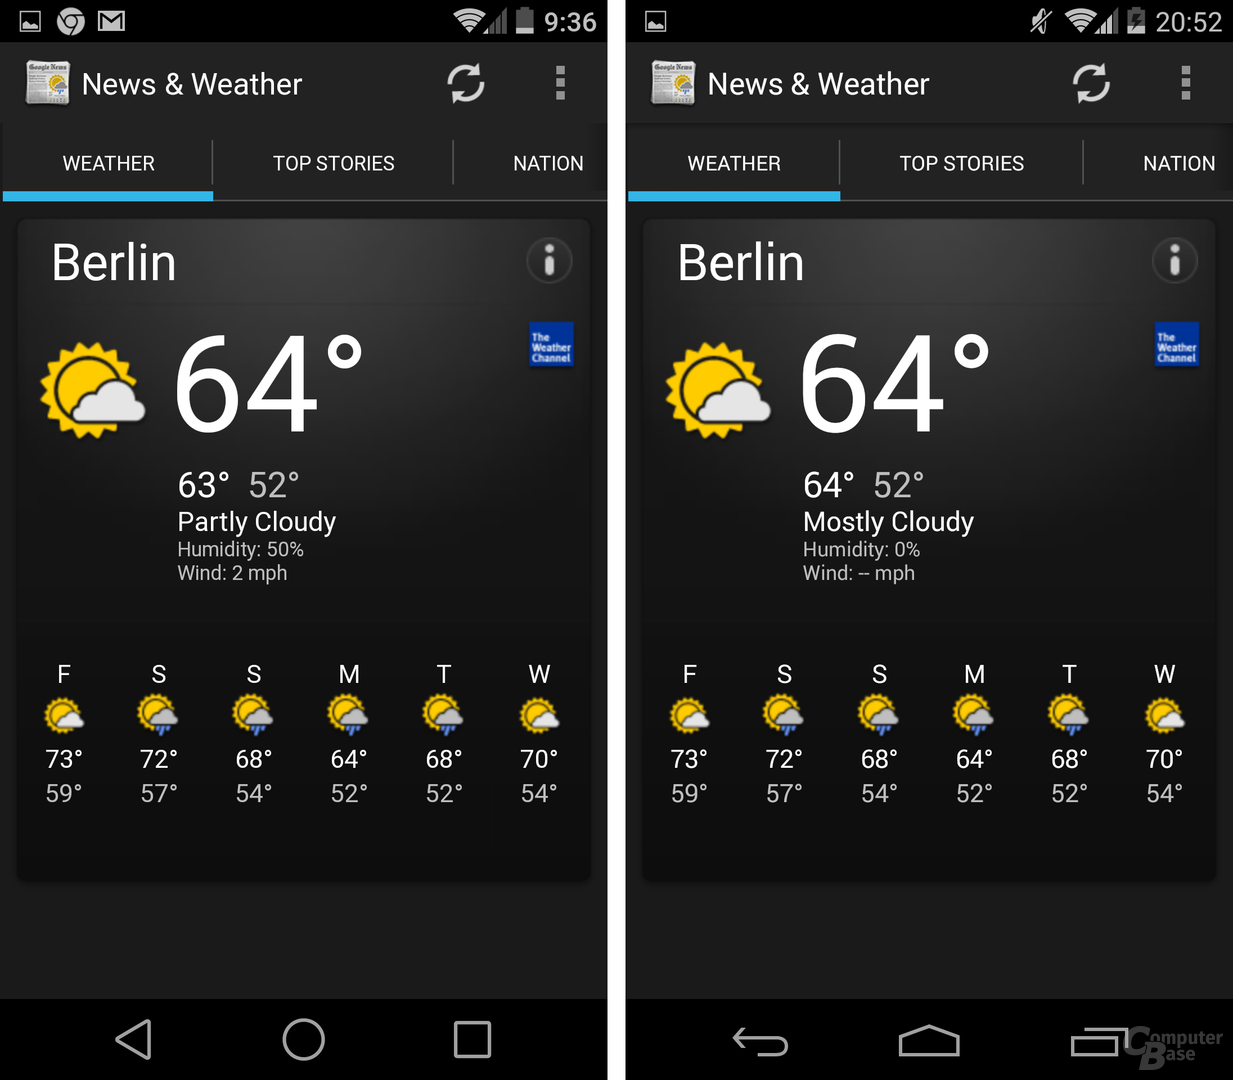 Android L / Android 4.4 KitKat – News & Weather